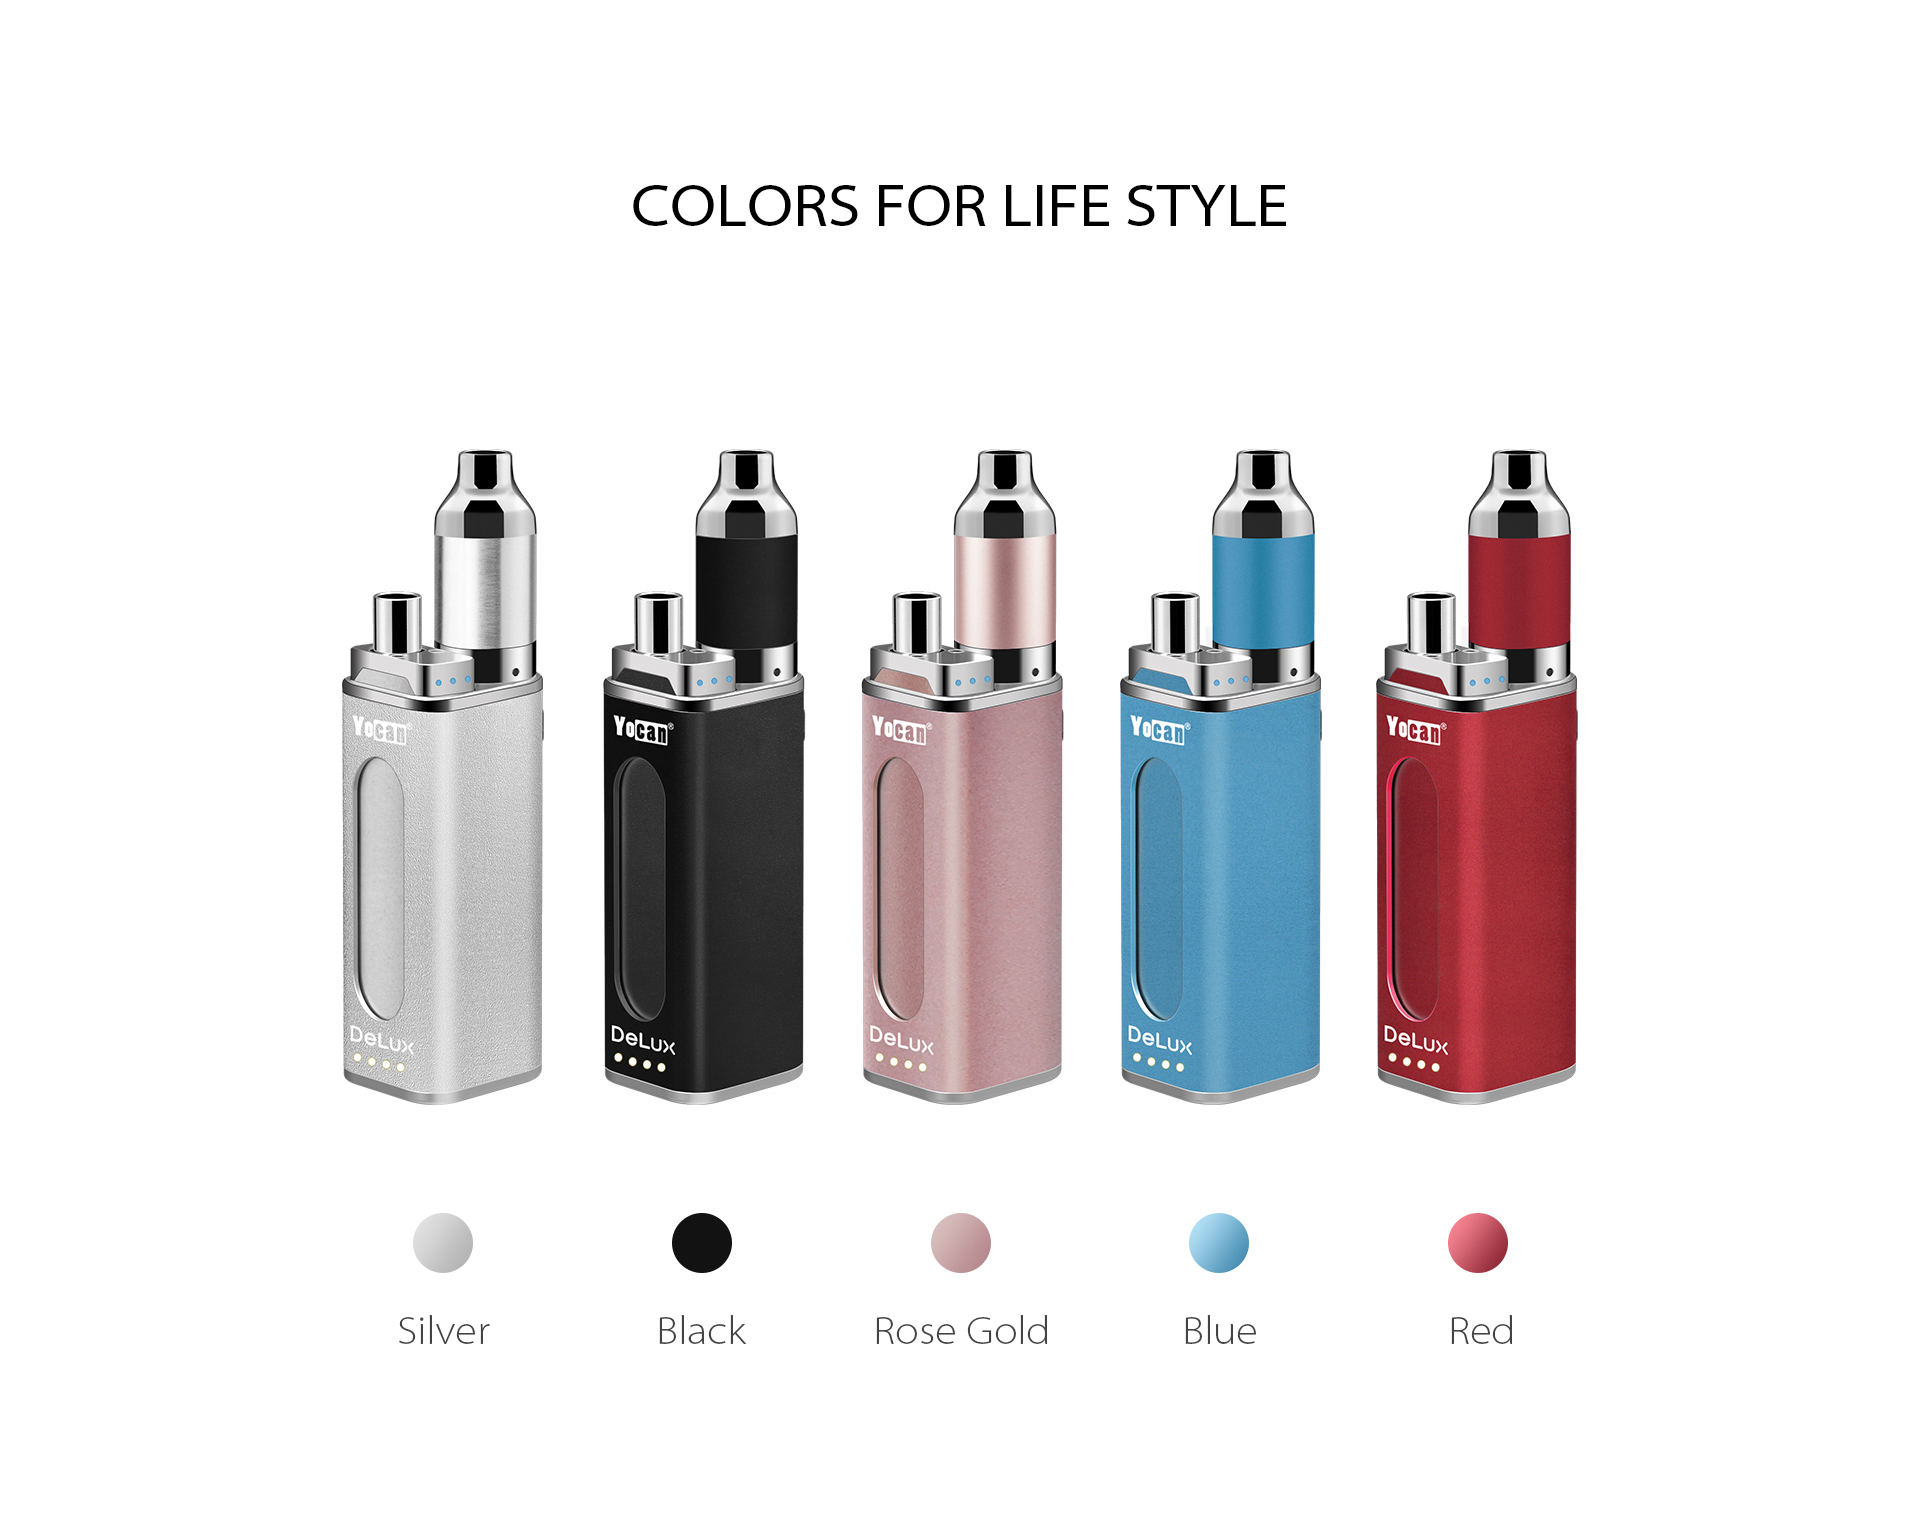 Yocan DeLux with five colors for lifestyle.